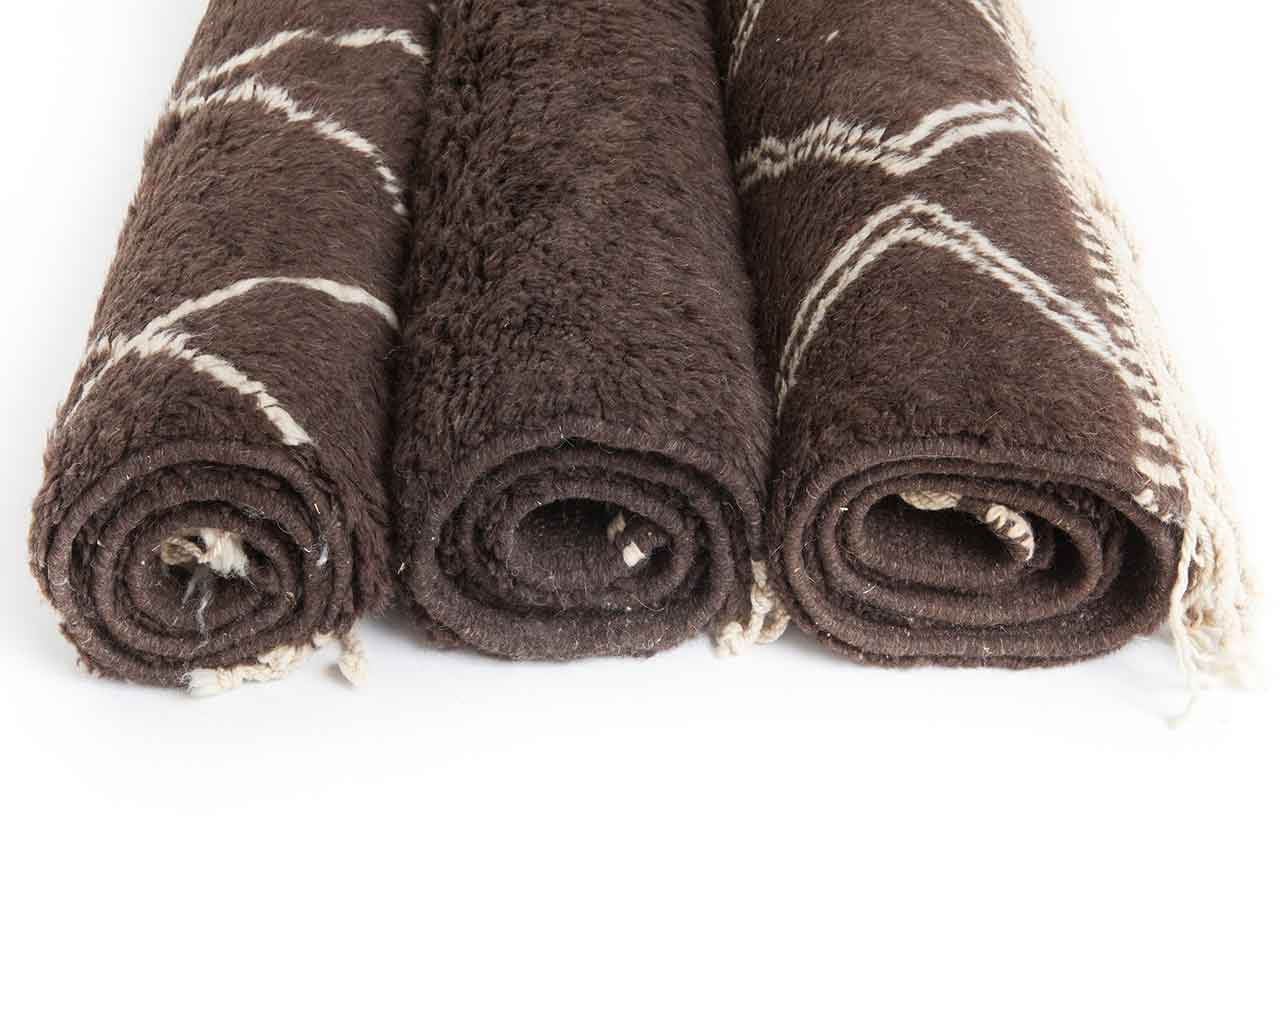 brown beni ourain carpets rolled up 1